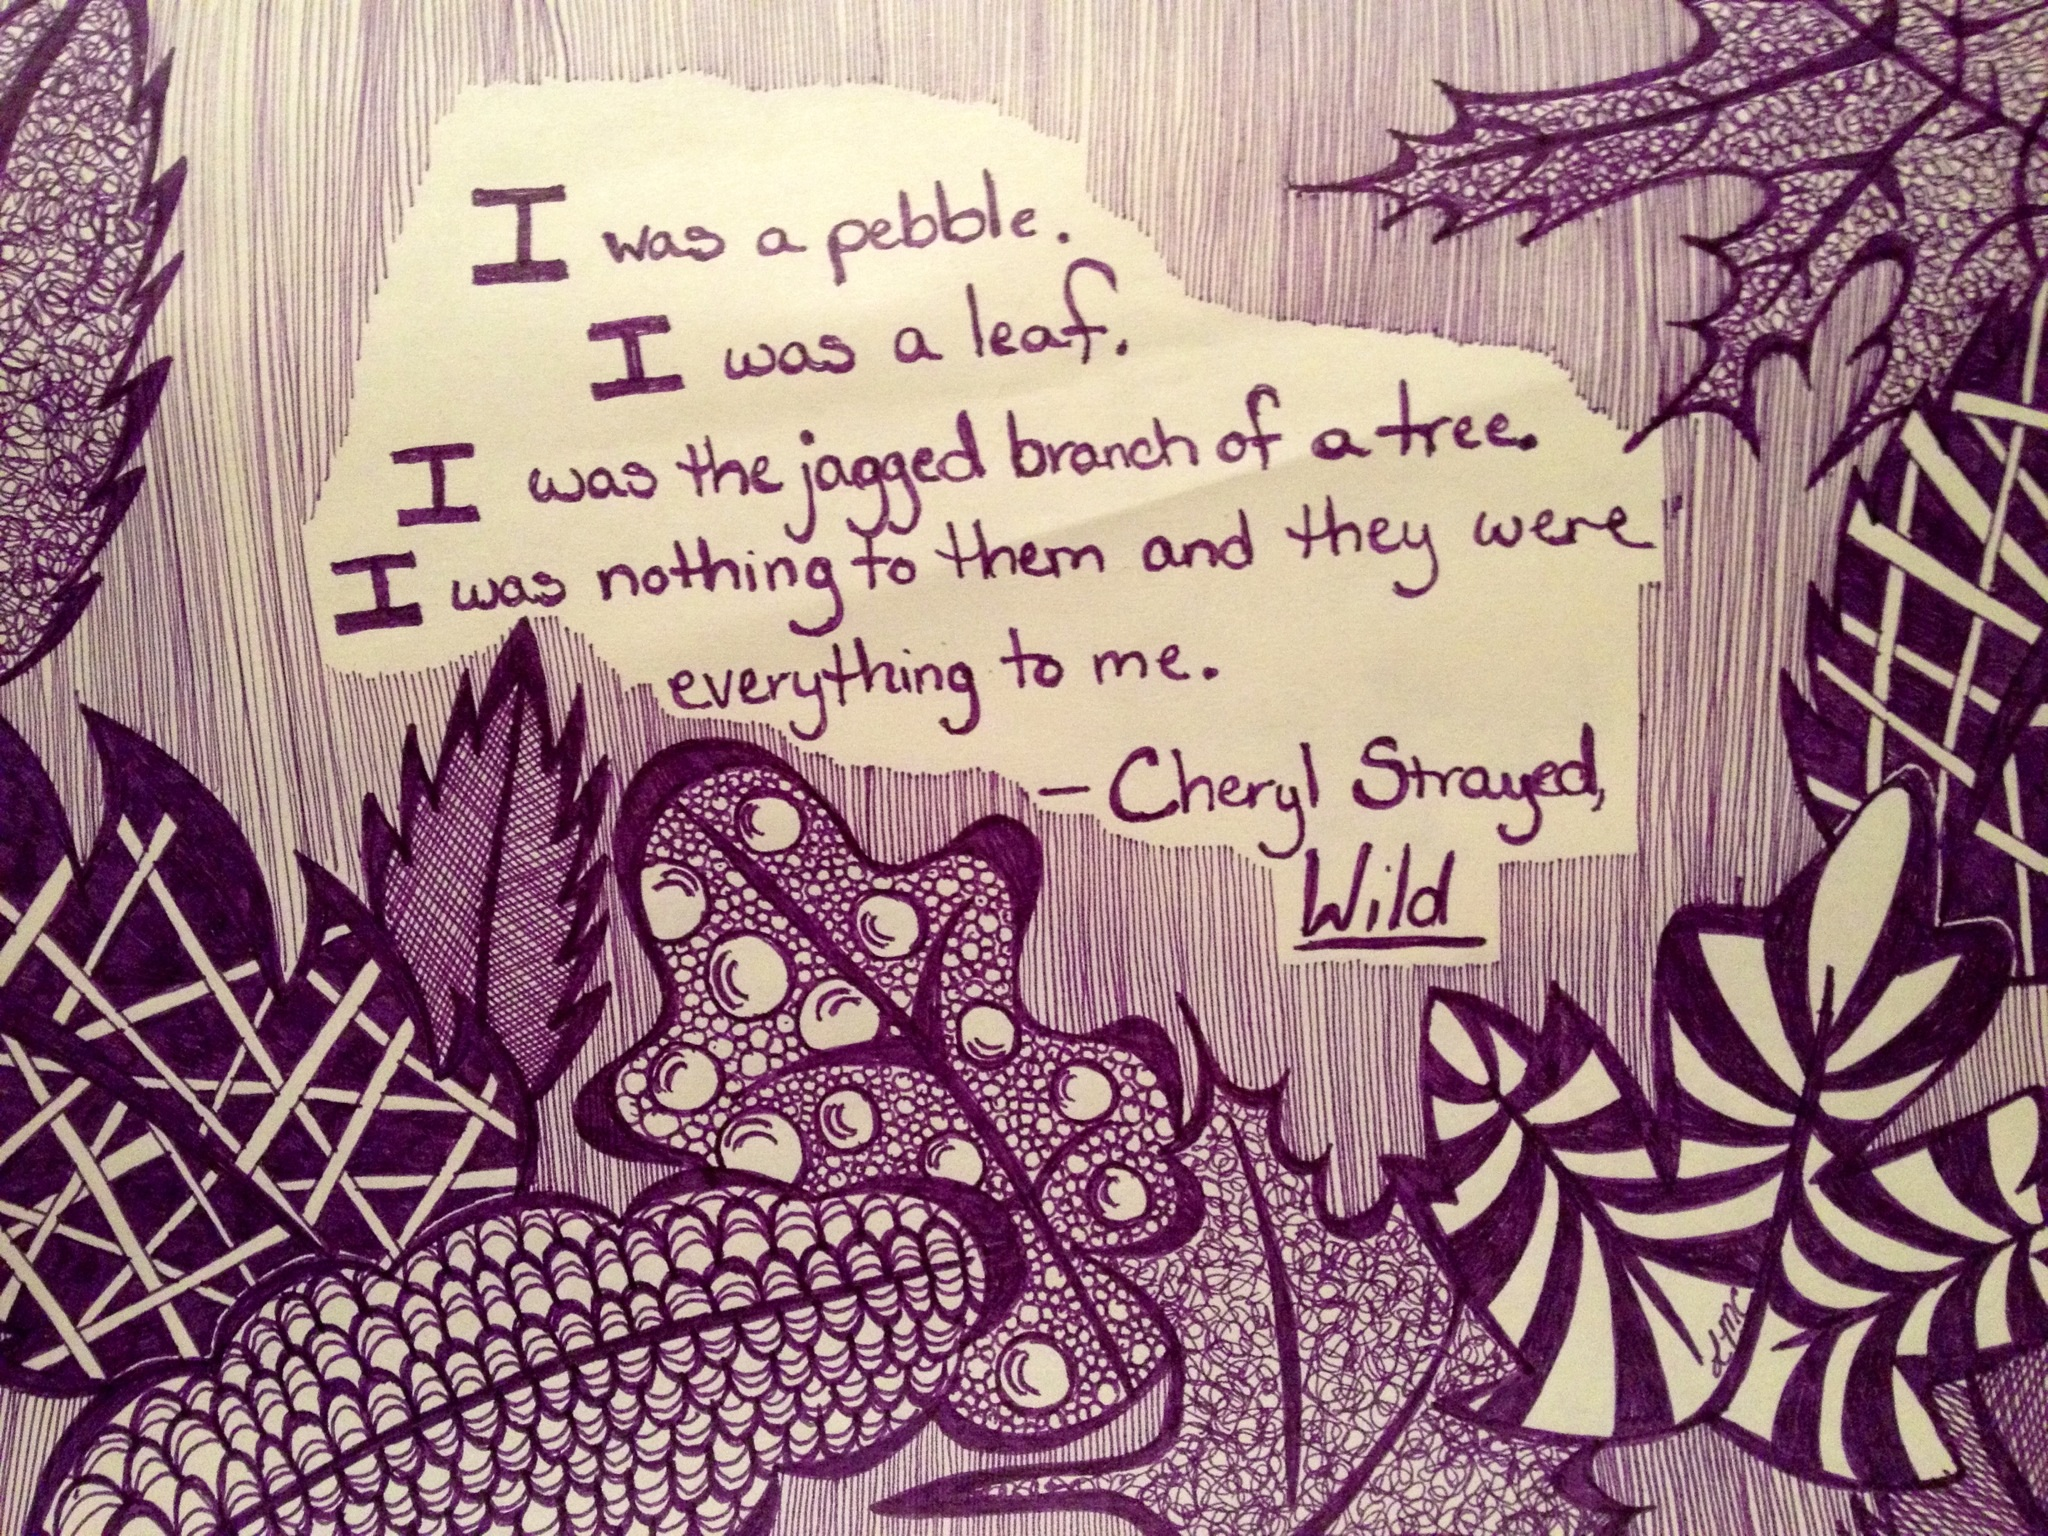 Cheryl Strayed's quote #6